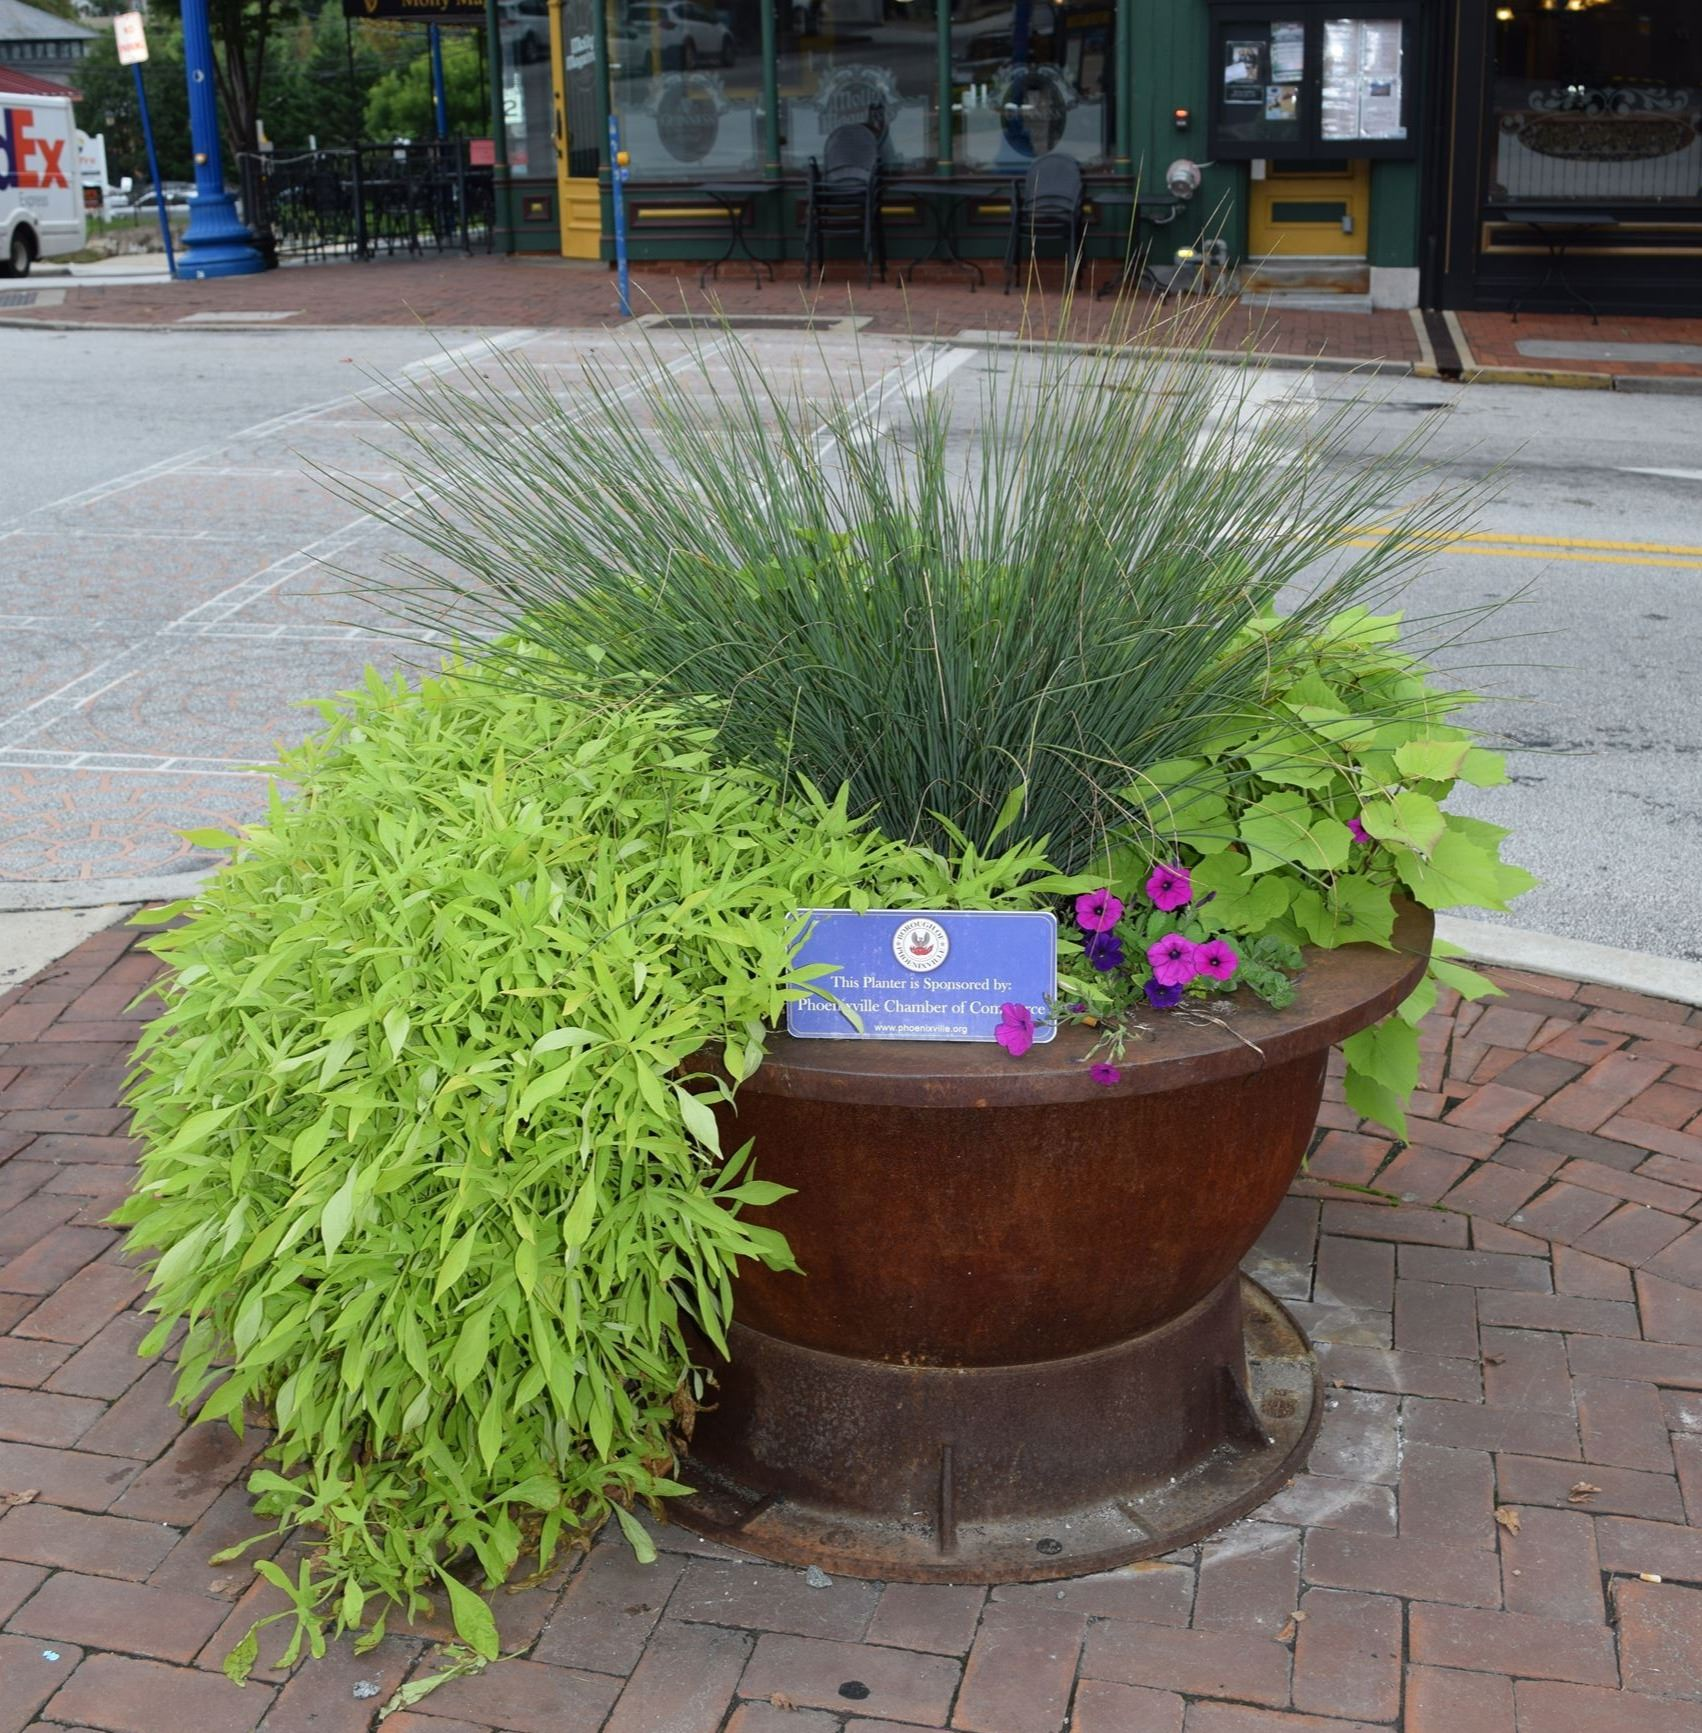 Phoenixville Regional Chamber of Commerce Planter